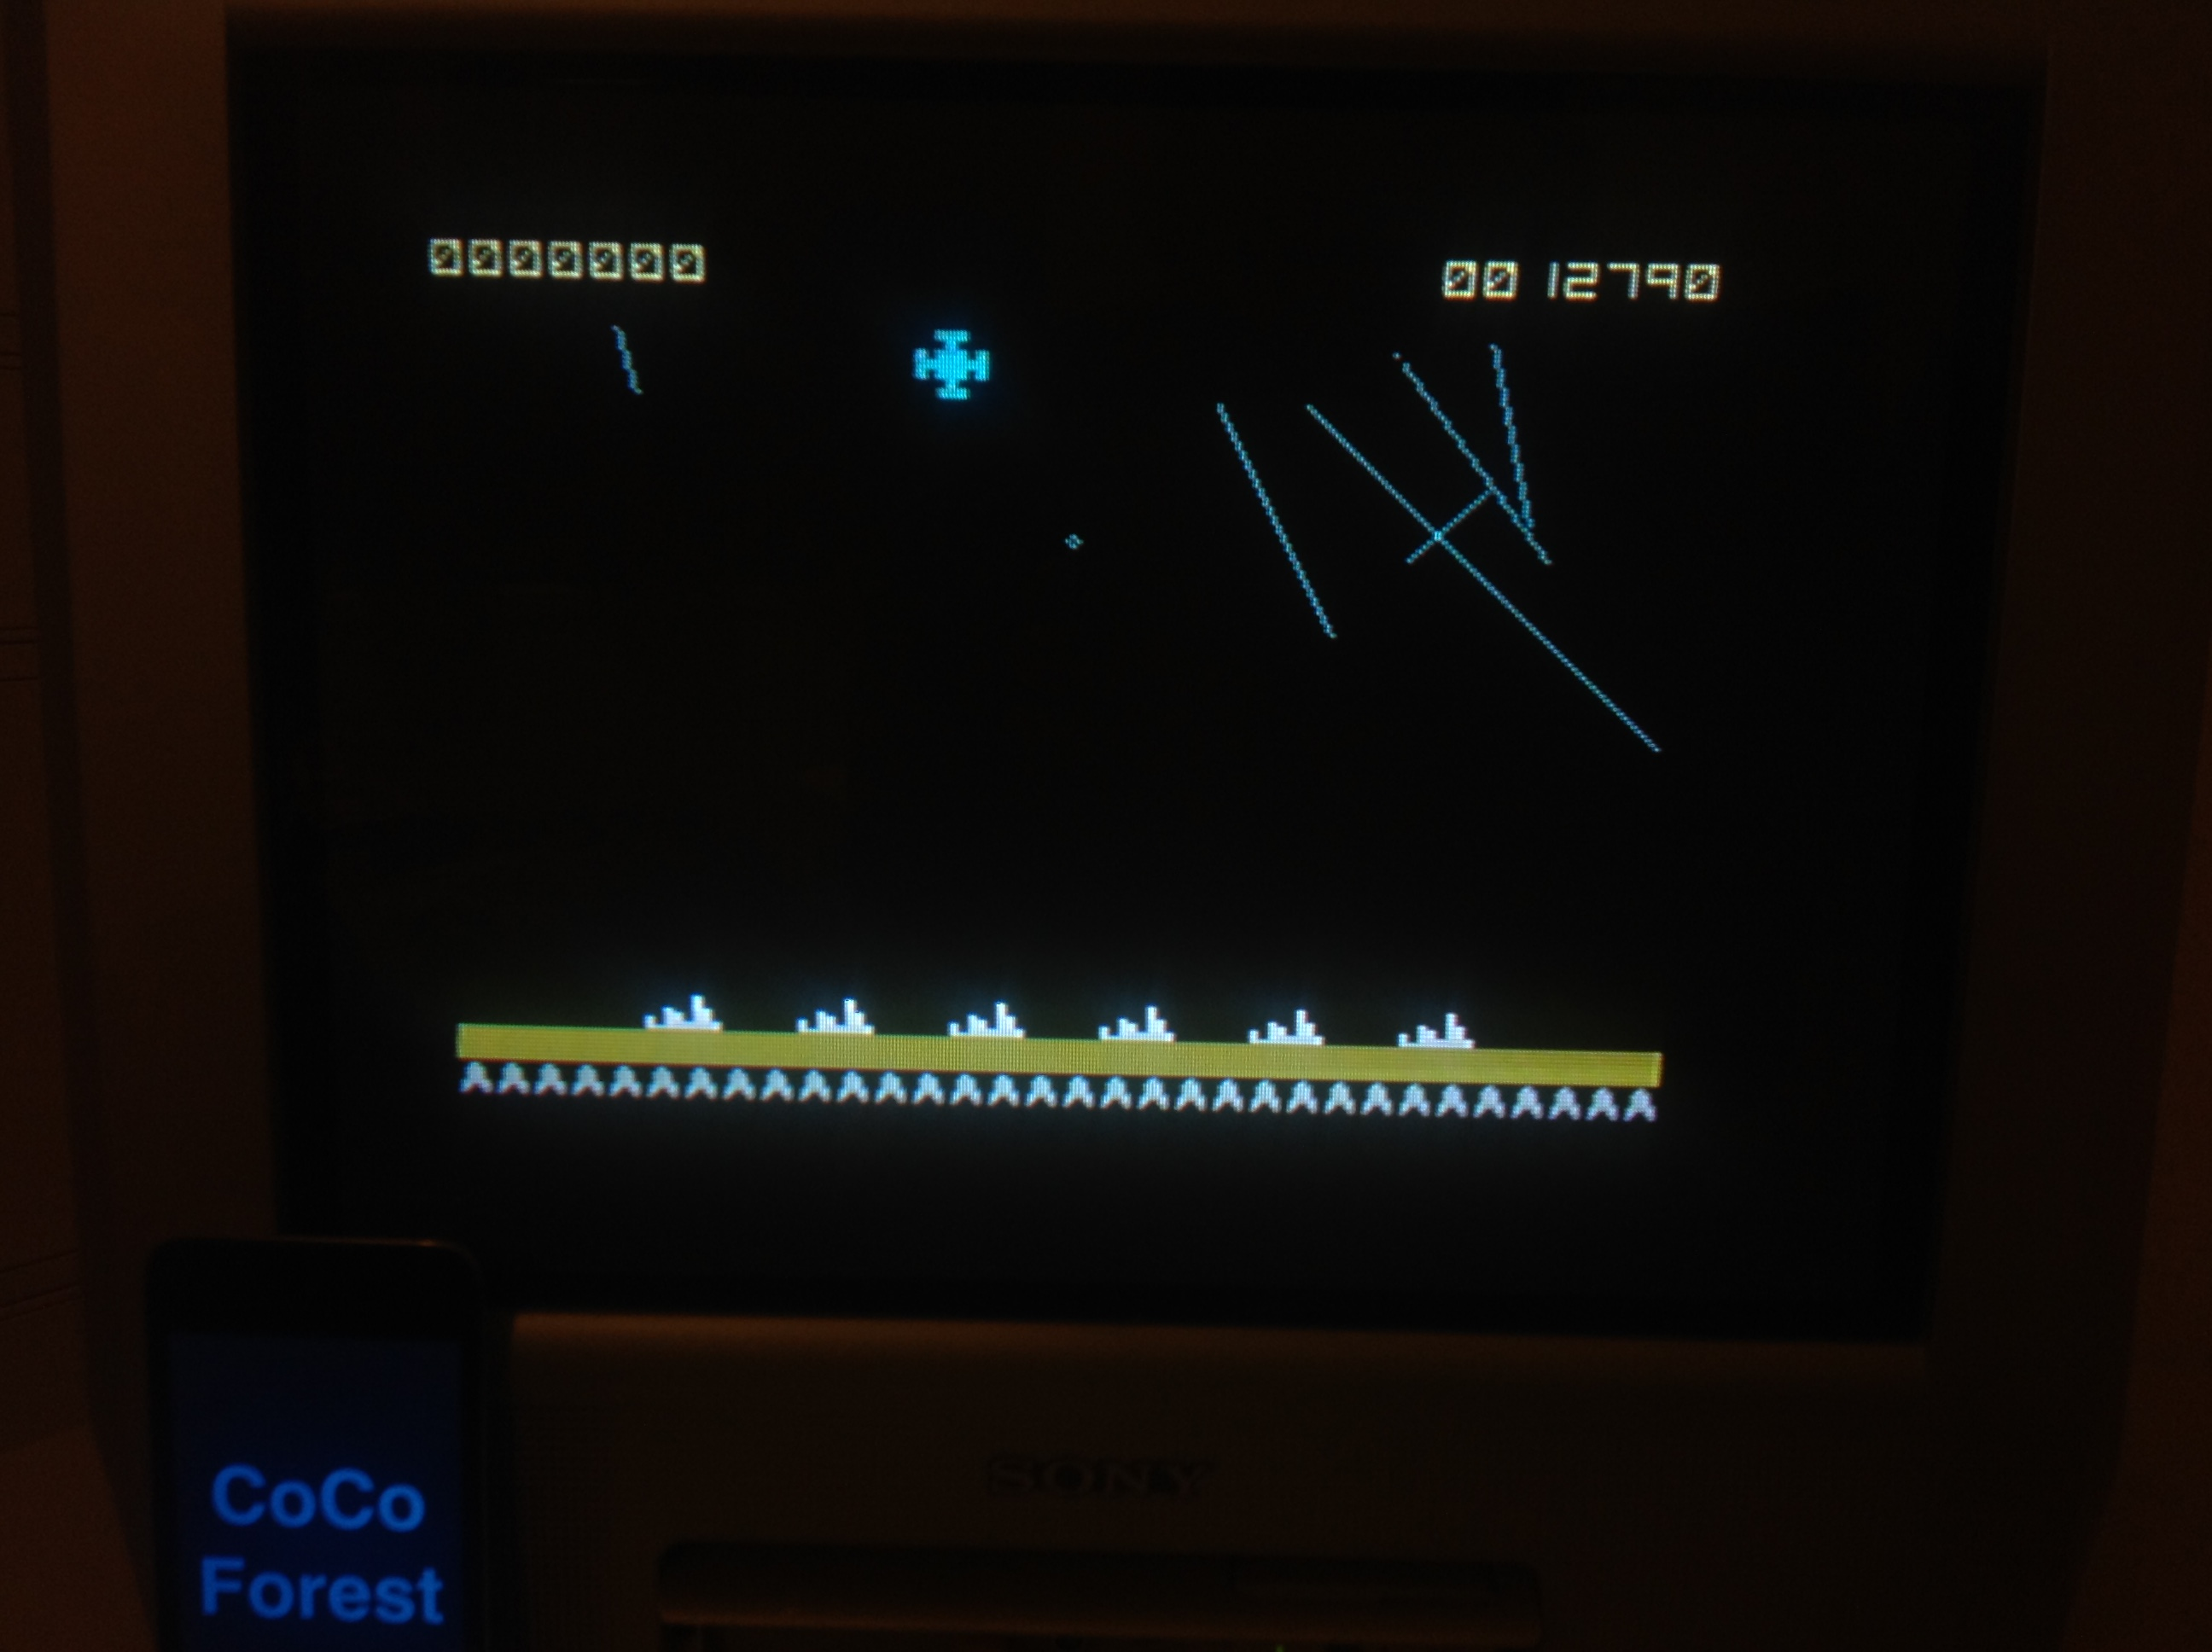 CoCoForest: Armageddon [Ocean Software] (ZX Spectrum) 12,790 points on 2016-01-11 13:44:15